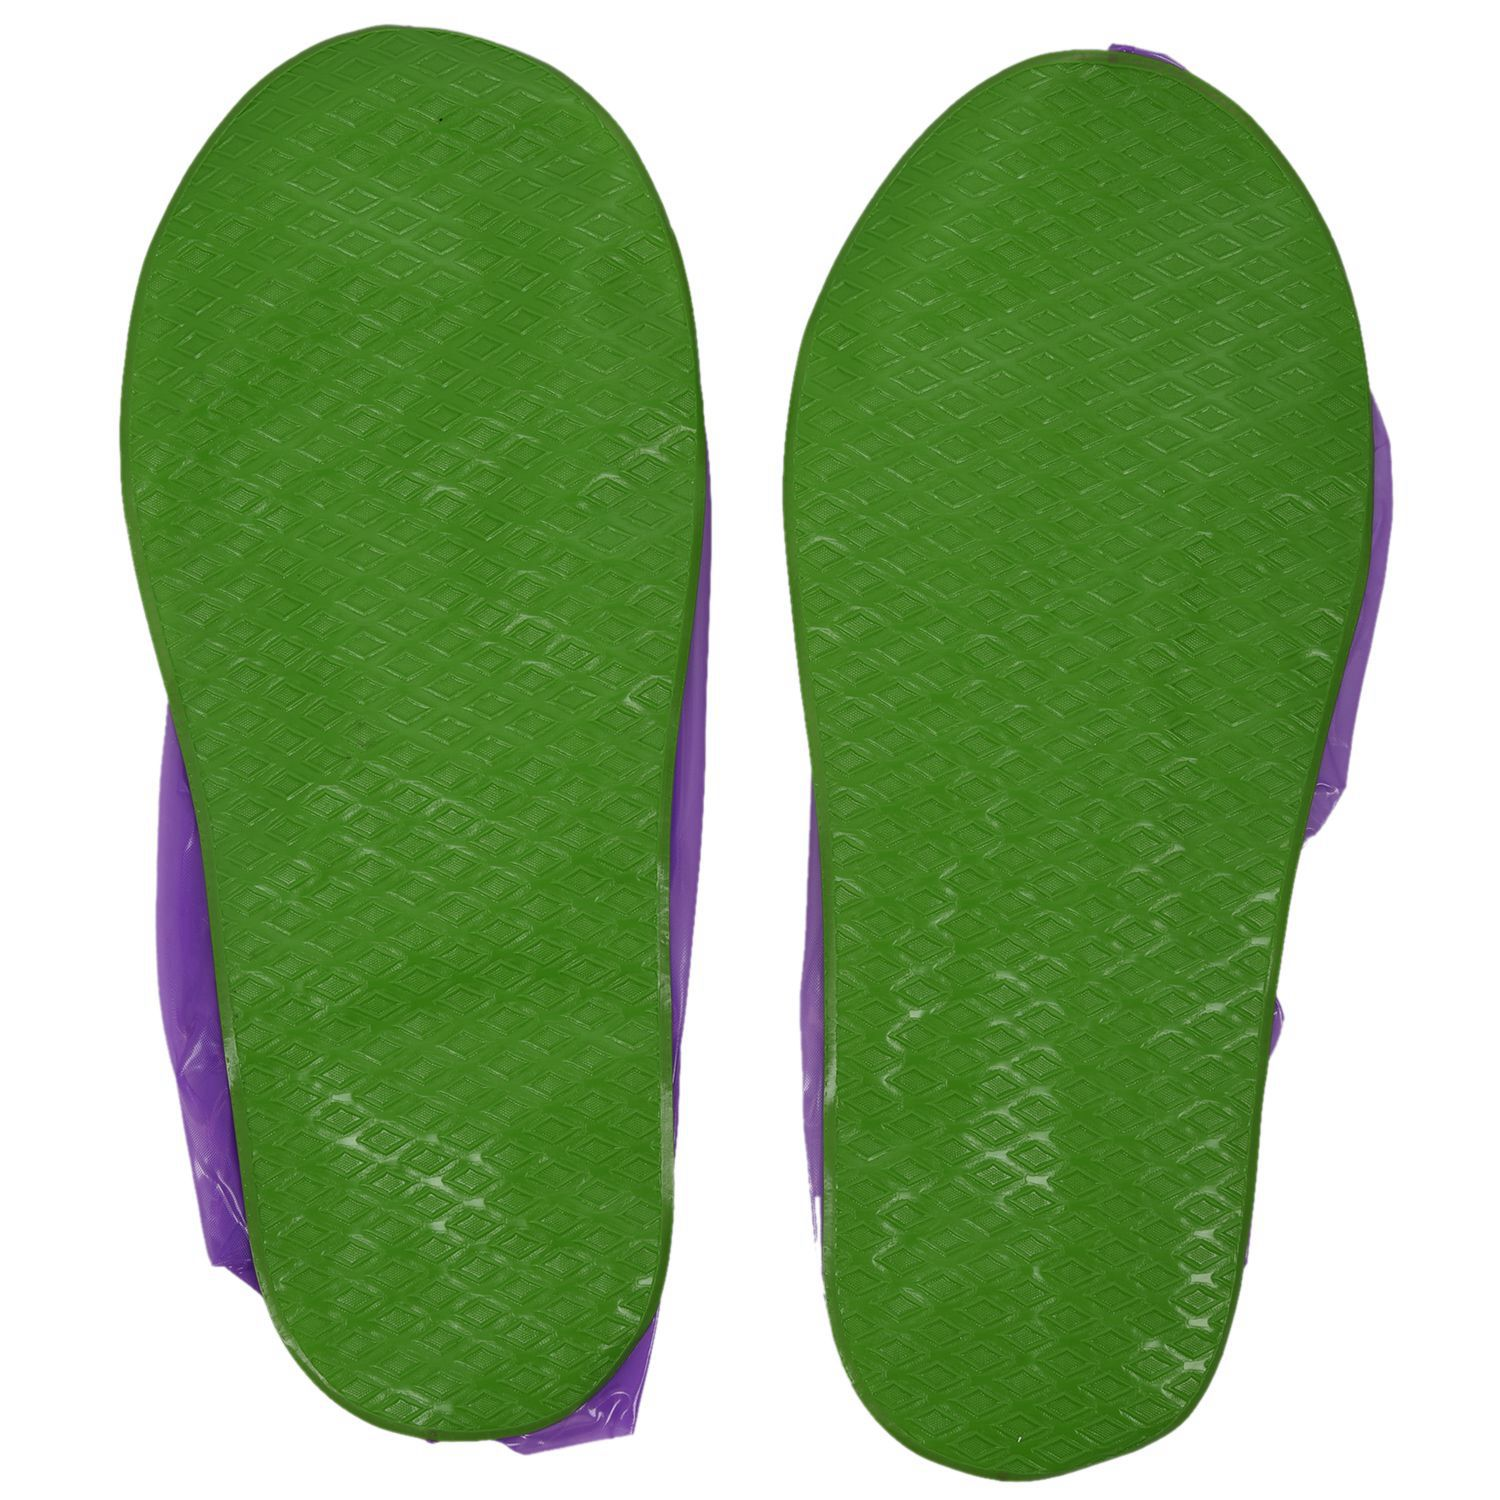 SAFEBET Super waterproof high tube boots cover sets of rain boots color: Green soles purple L